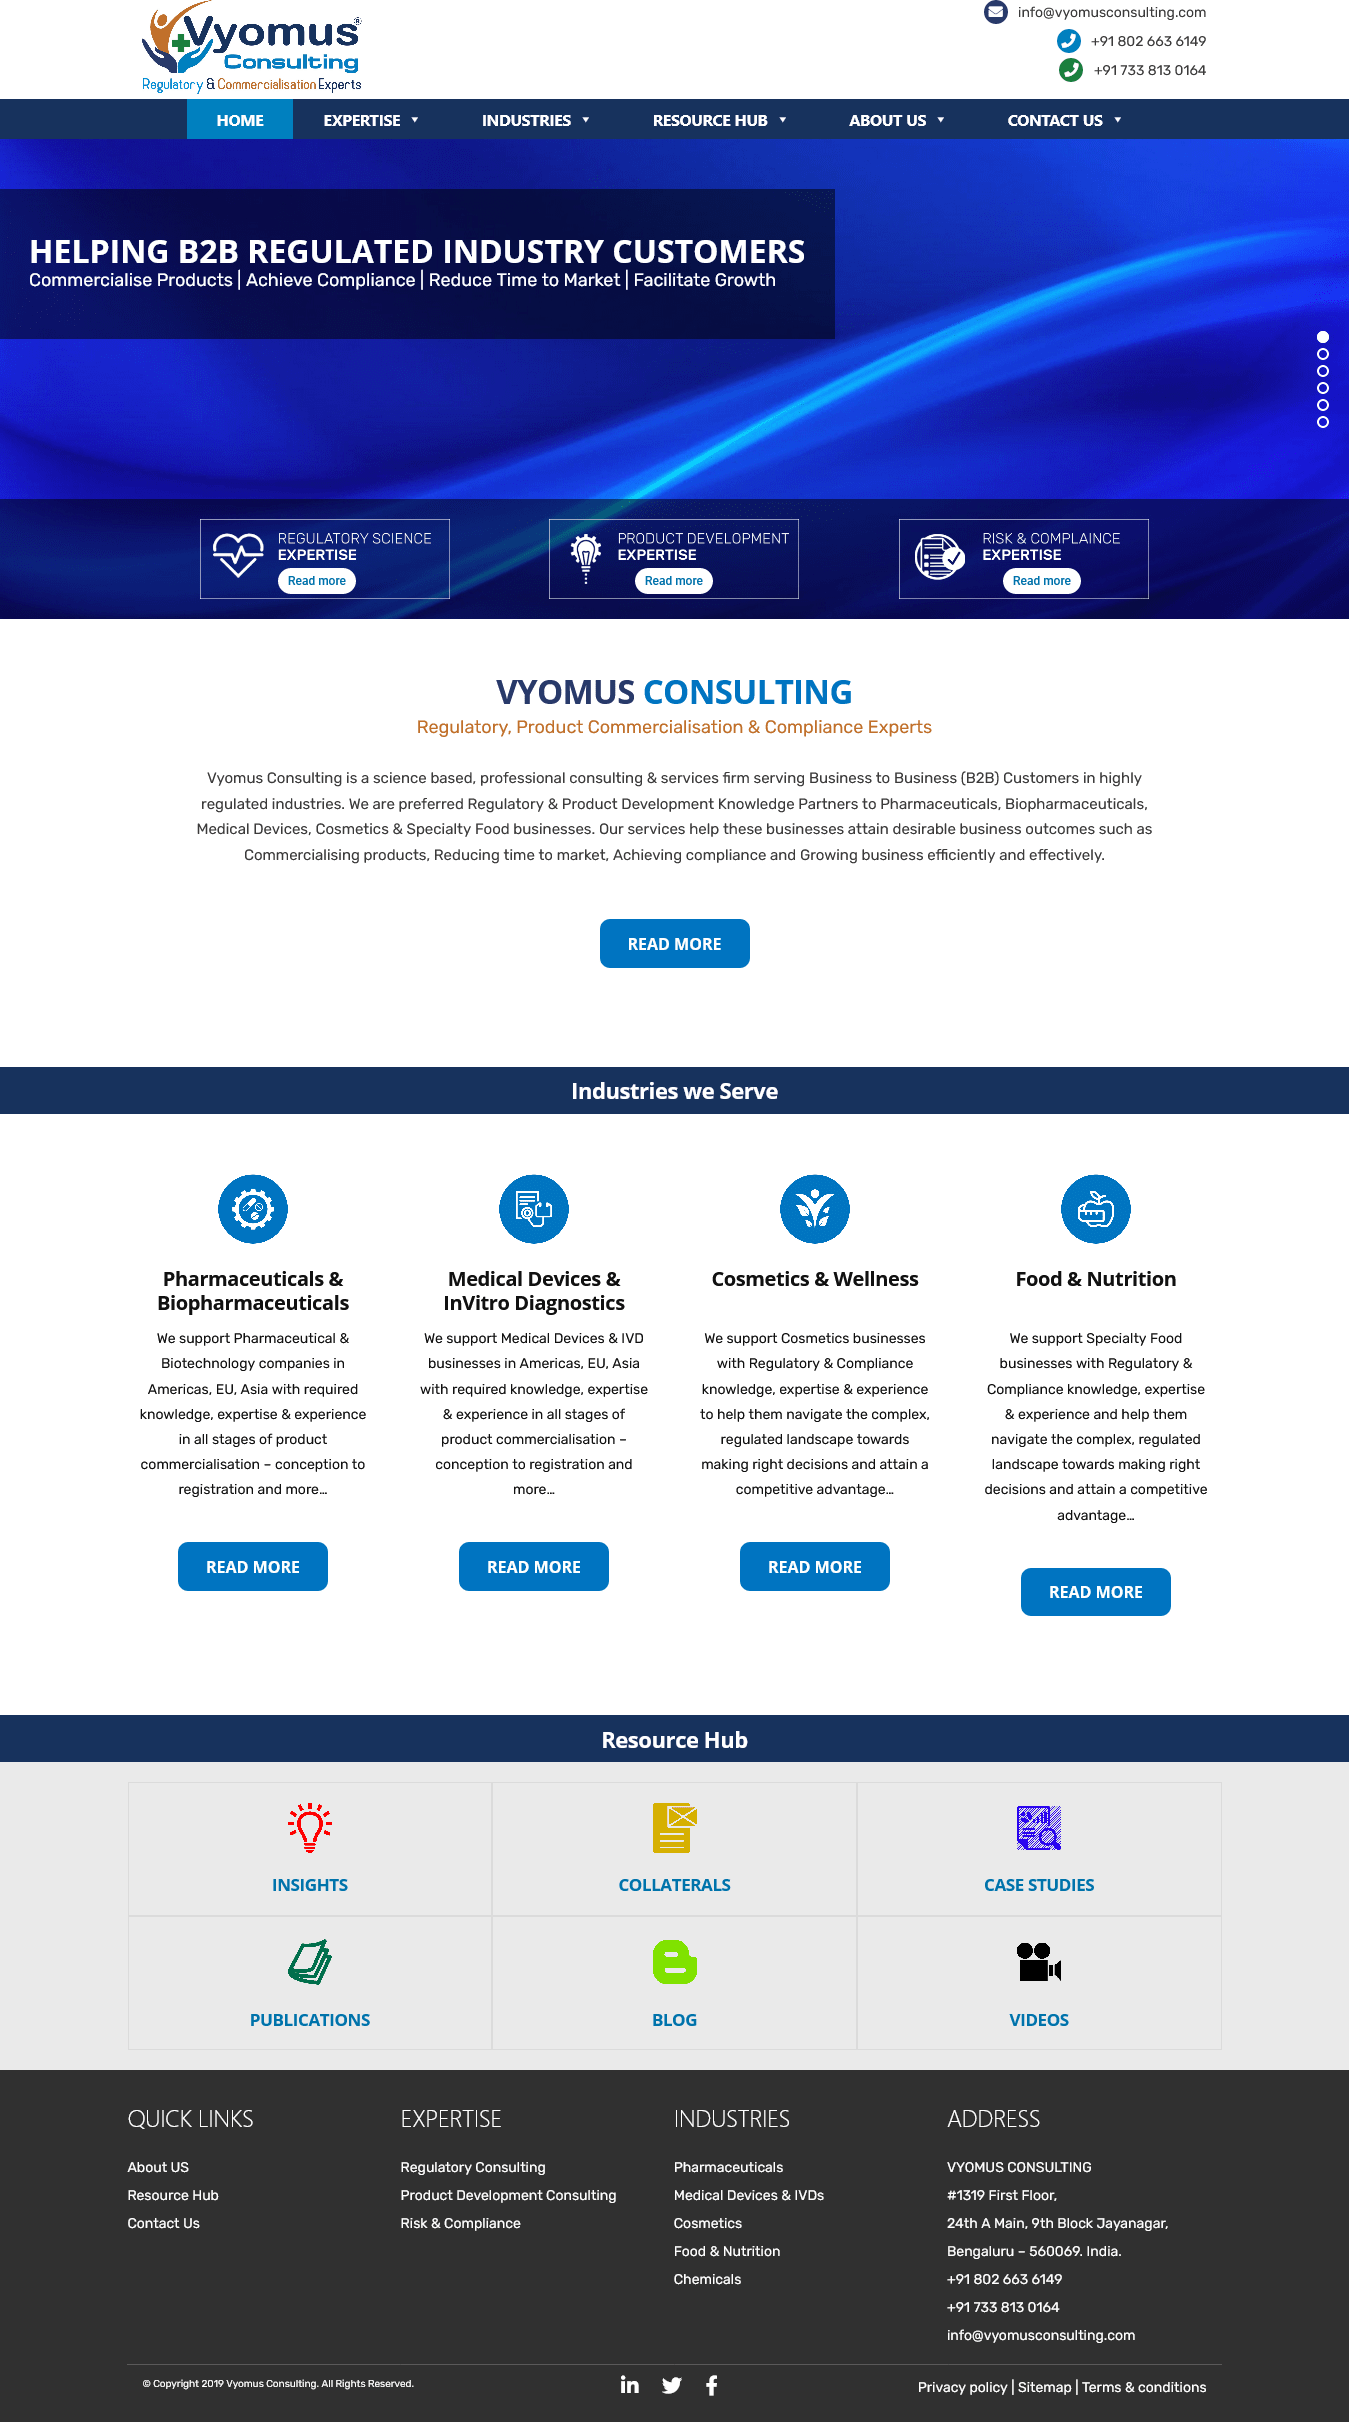 vyomusconsulting